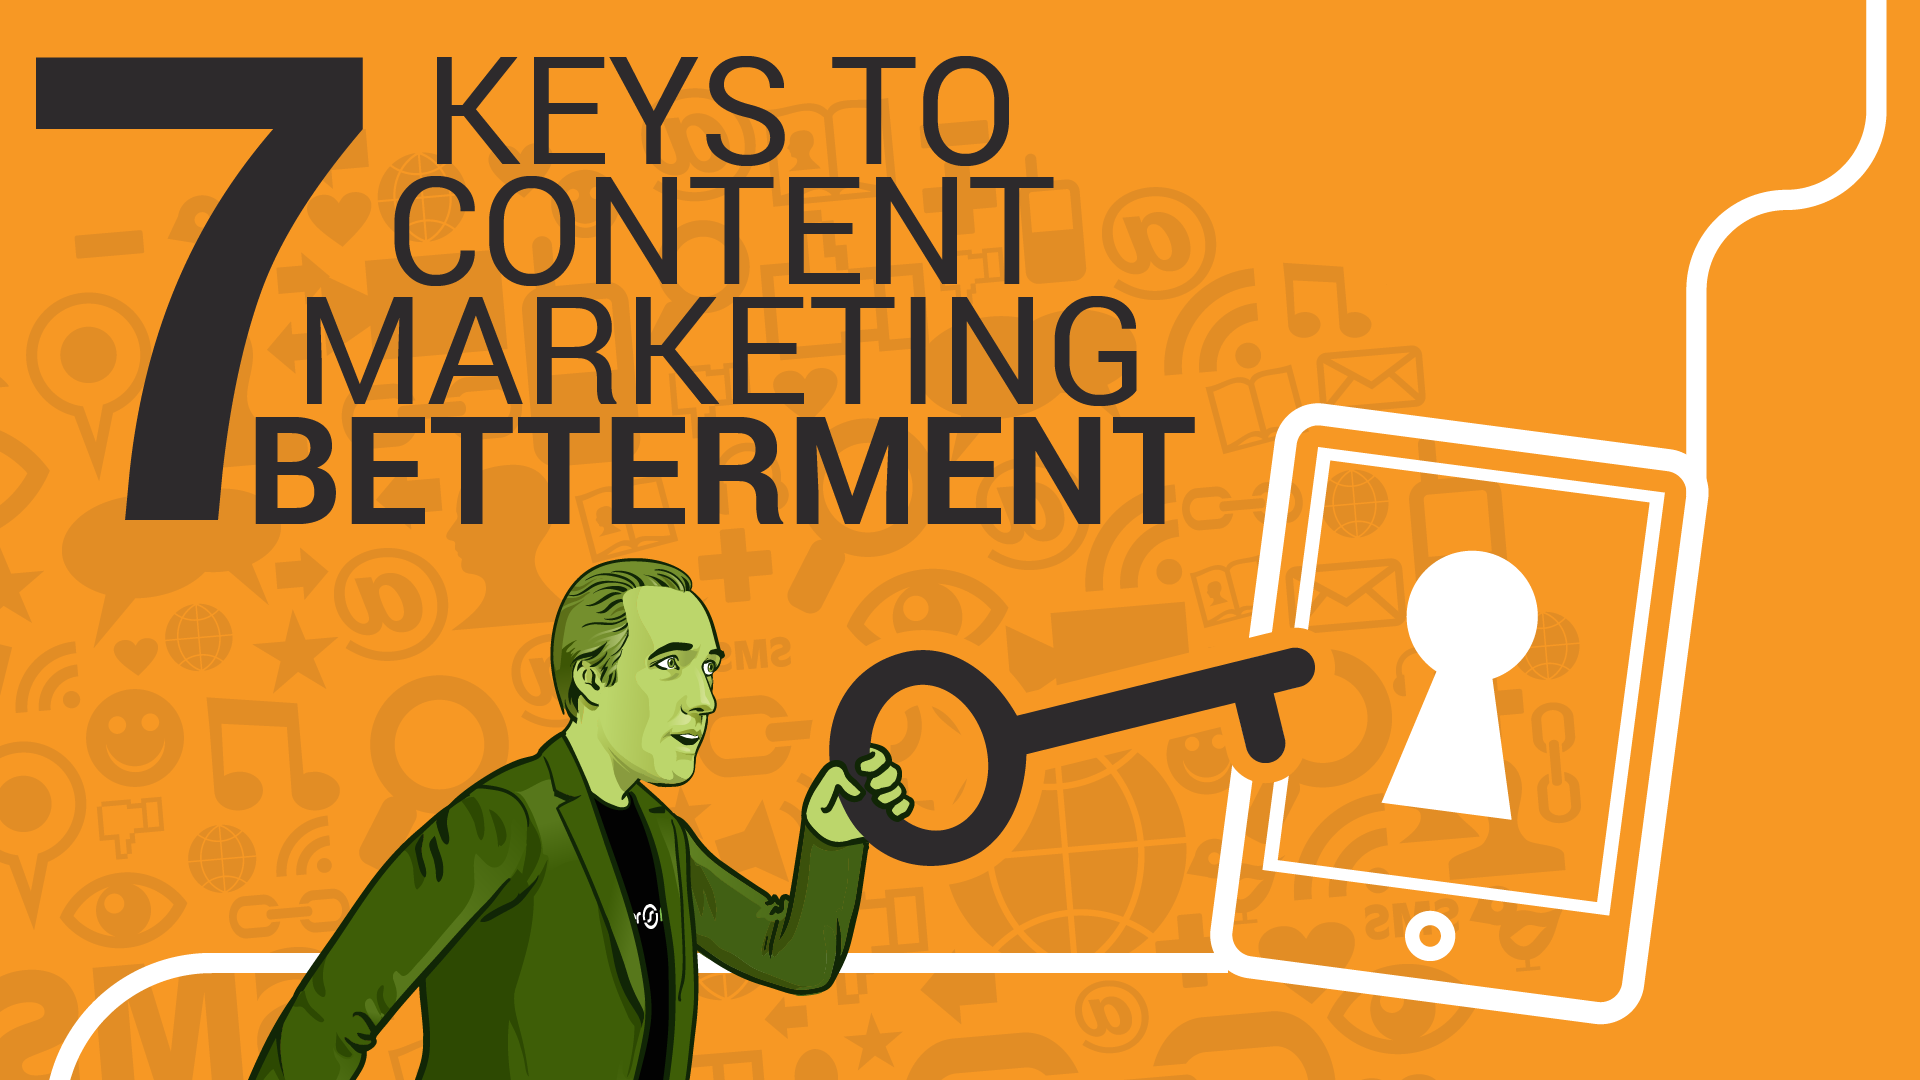 7 Keys to Content Marketing Betterment